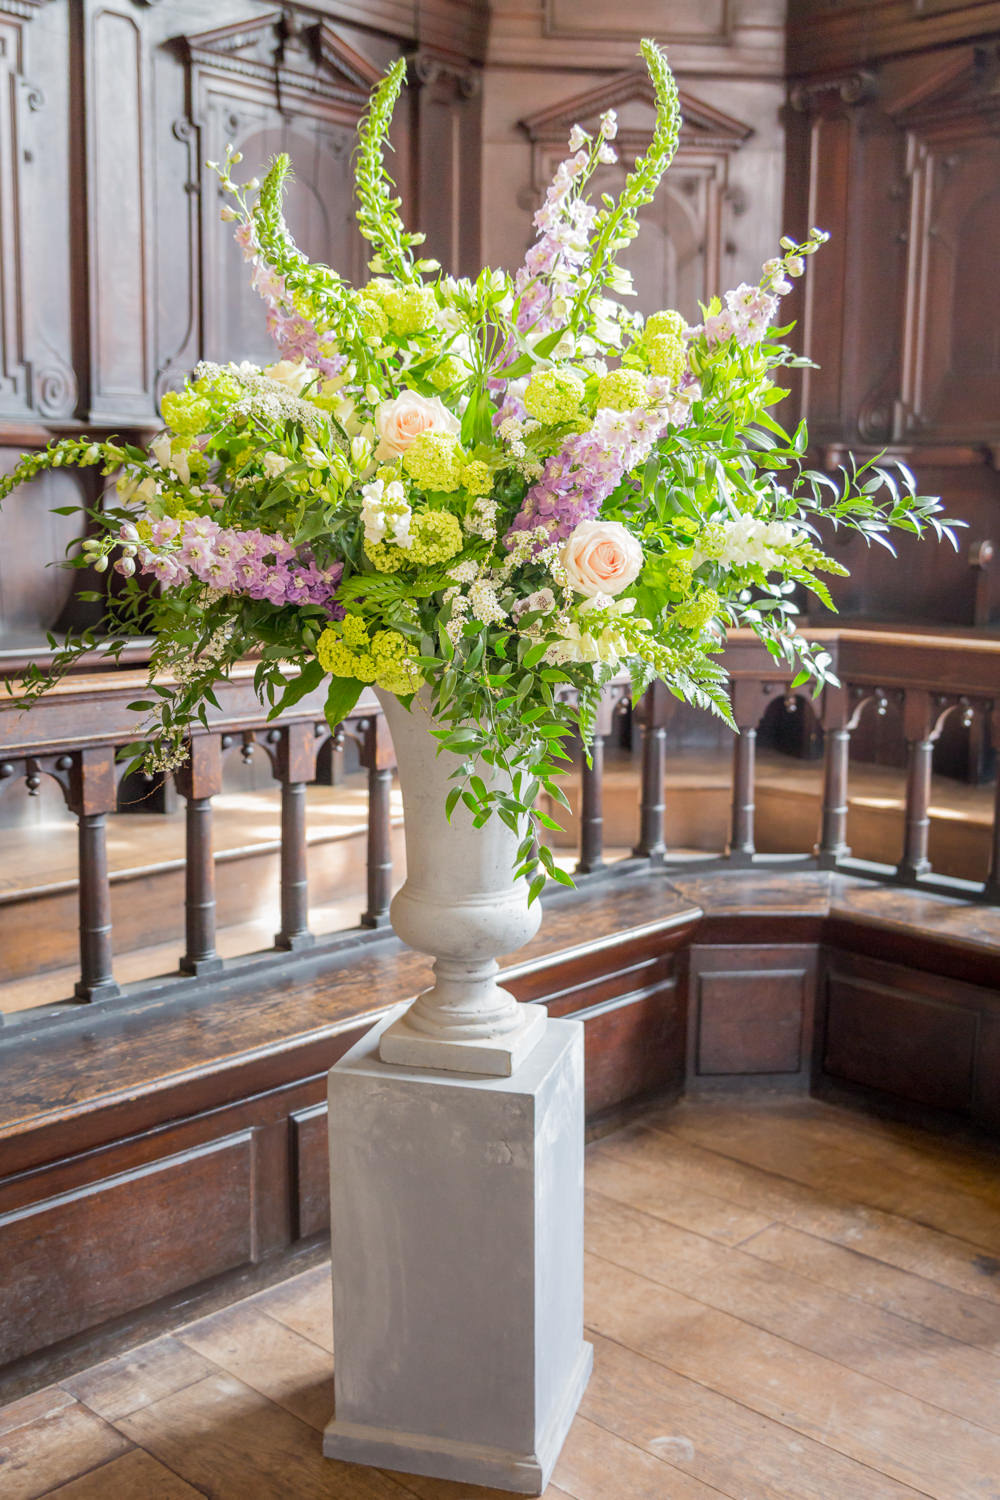 Flowers Floral Foxgloves Urn Vase Greenery Bodleian Library Wedding Anita Nicholson Photography